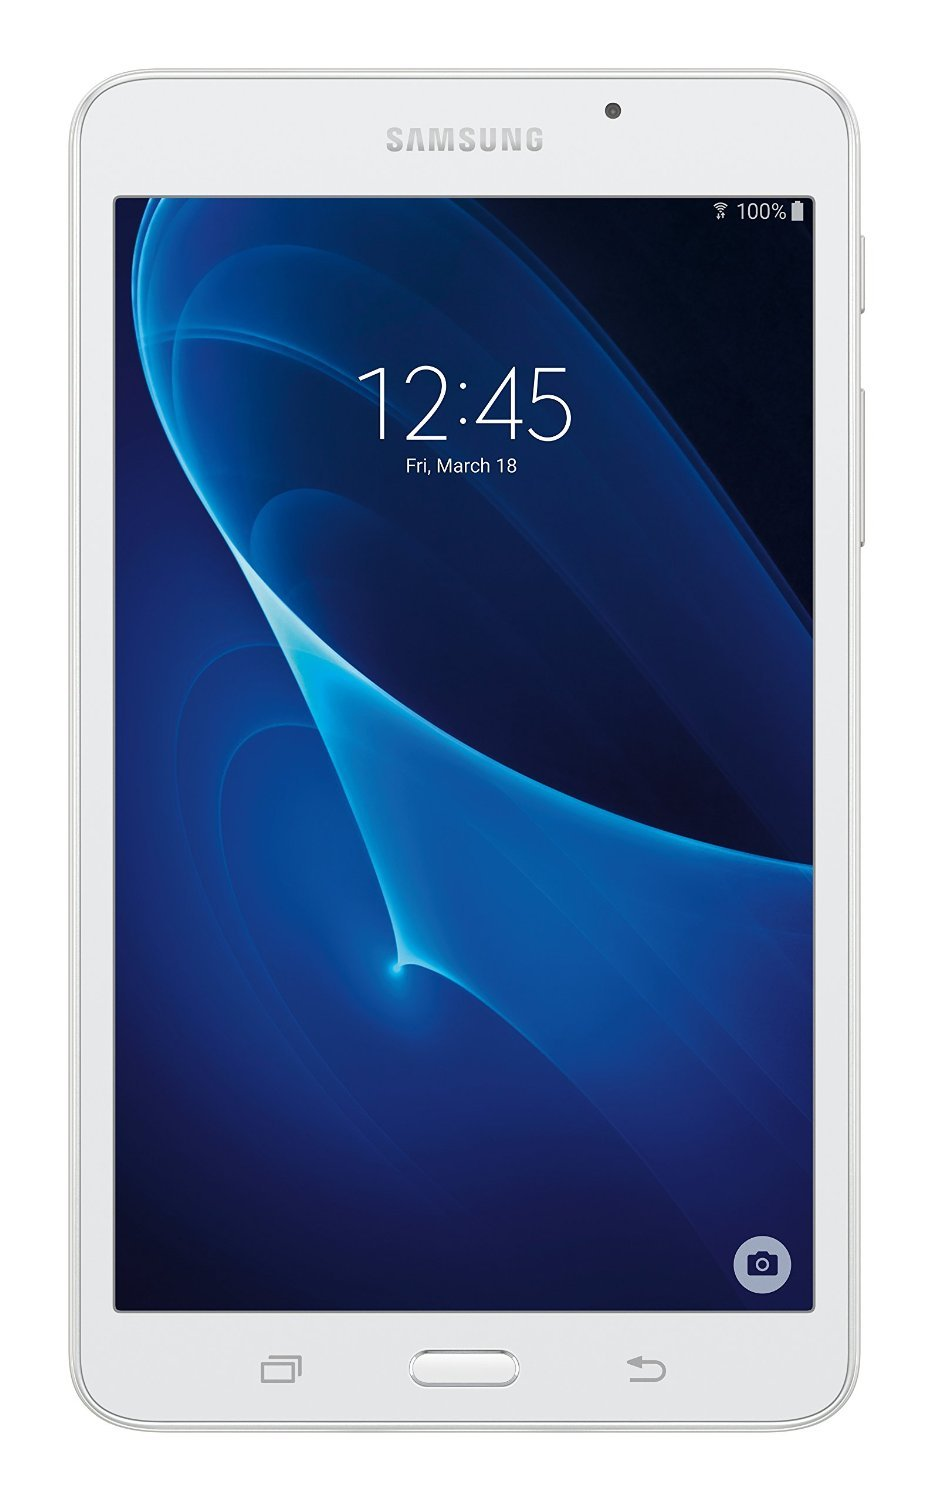 Samsung Galaxy Tab A 7-Inch Tablet (8 GB, White) Certified Refurbished